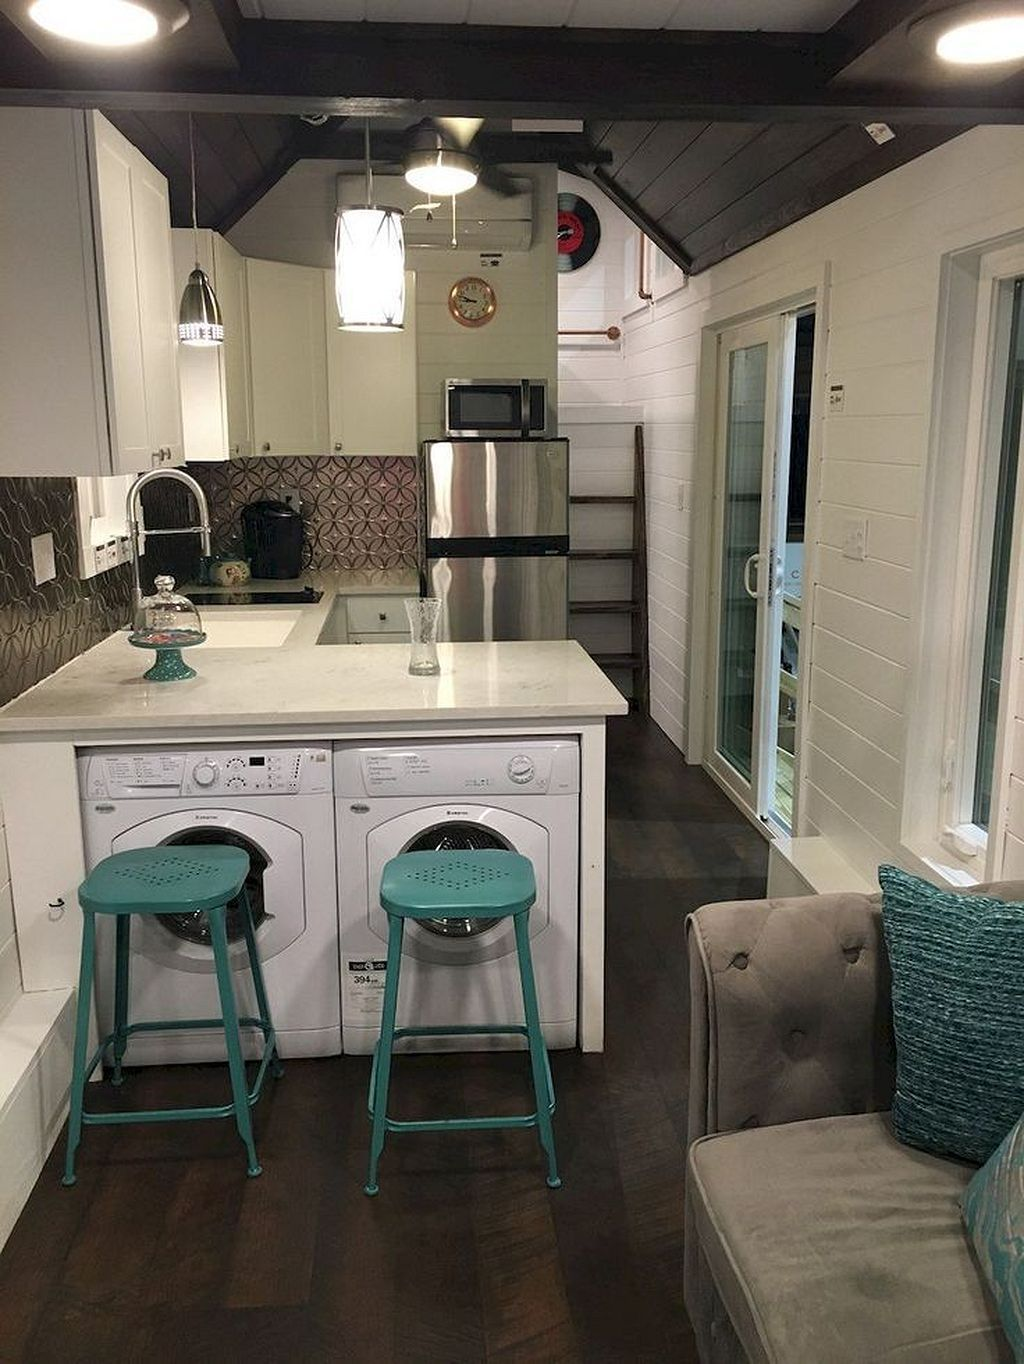 Nice 50+ Fabulous Tiny Houses Design That Maximize Style and Function https://modernhousemagz.com/50-fabulous-tiny-houses-design-that-maximize-style-and-function/